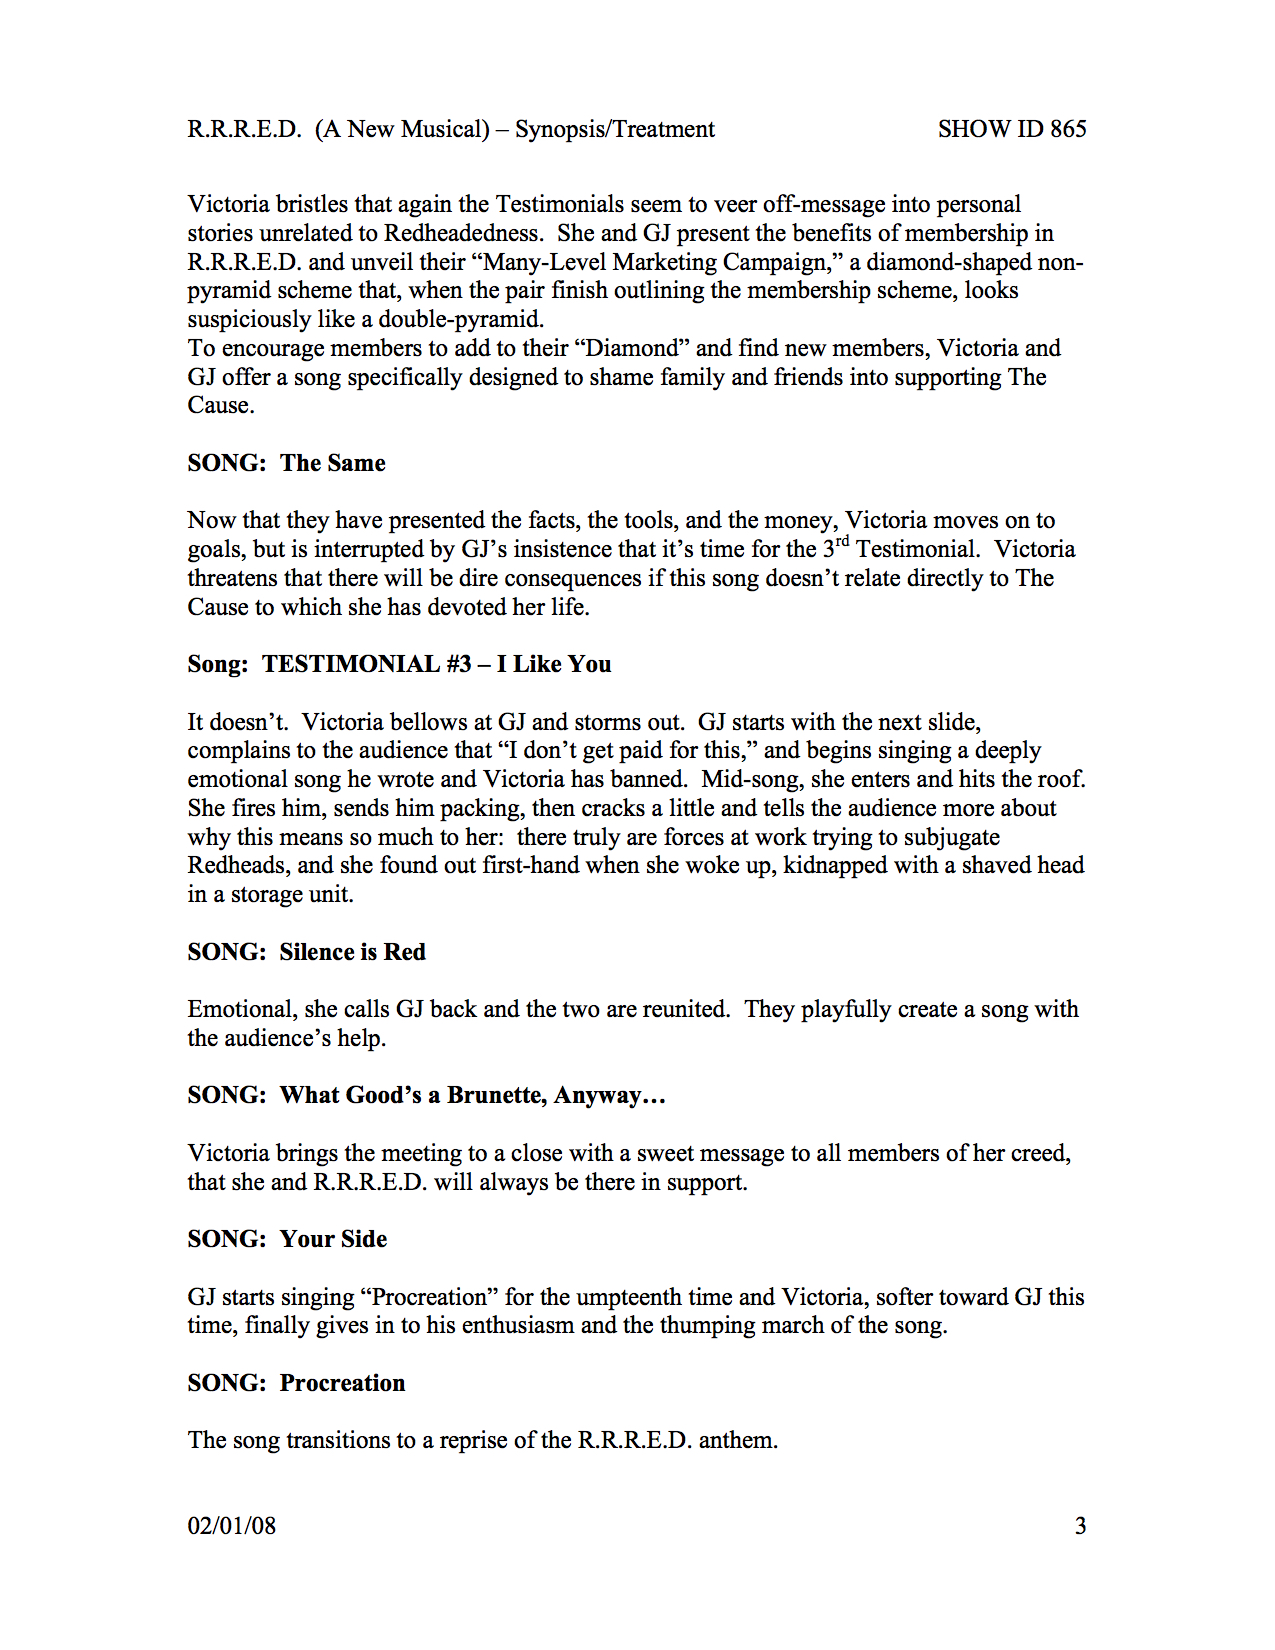 RRRED Synopsis for NYMF page 3.jpg